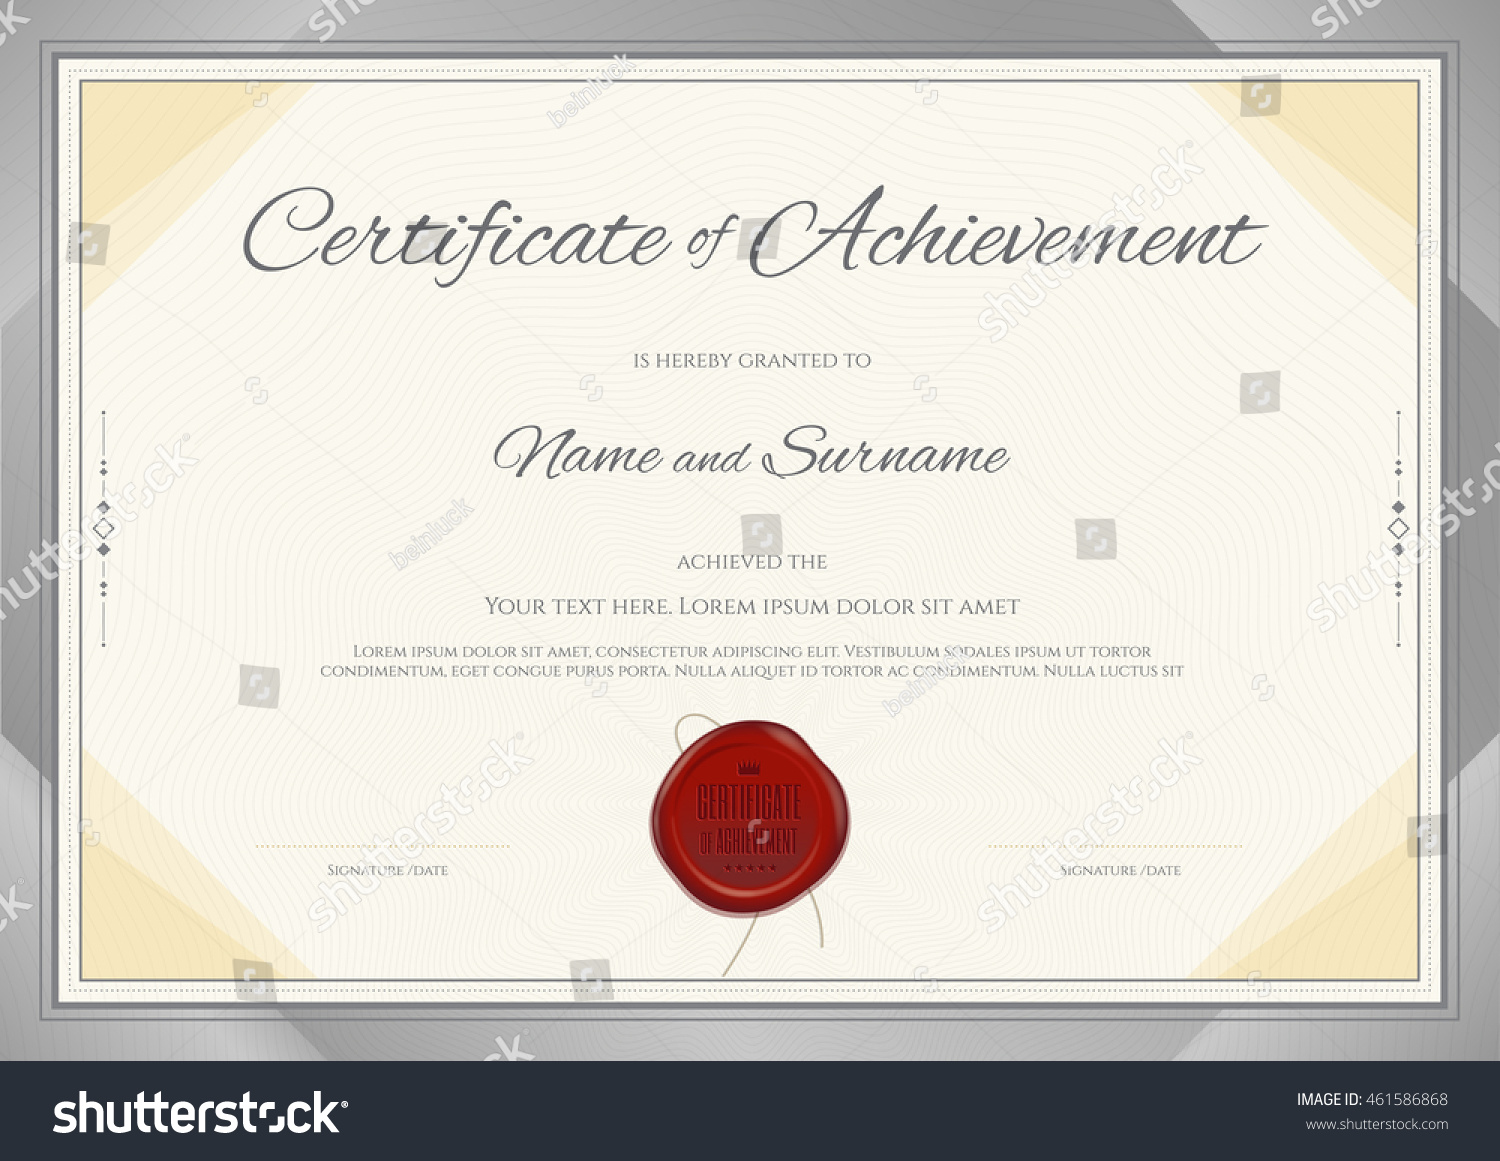 Da Form 2442 Certificate Of Achievement Template Mandegarfo